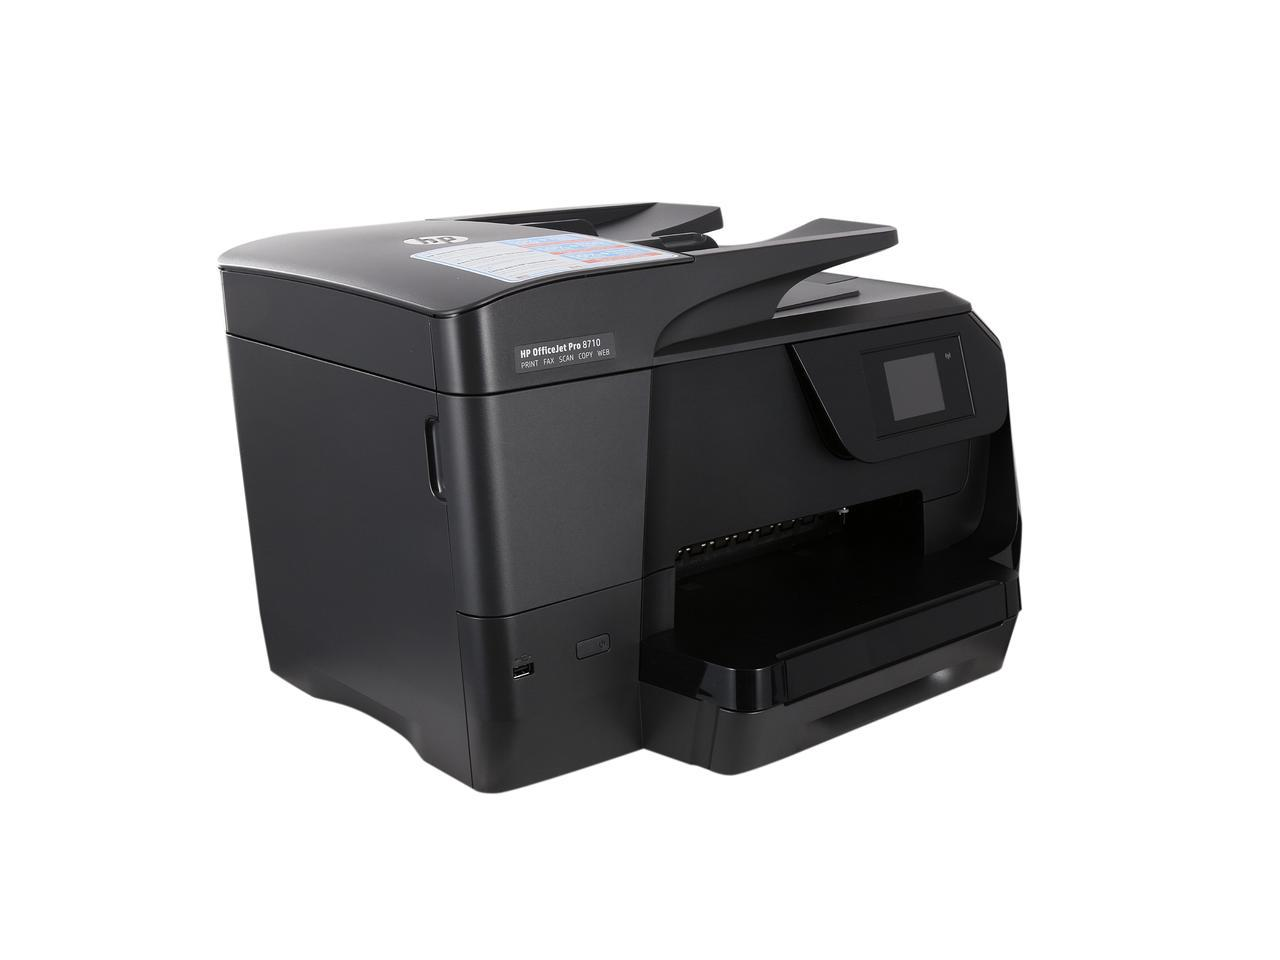 hp officejet pro 8710 all in one printer help tech co ltd. Black Bedroom Furniture Sets. Home Design Ideas